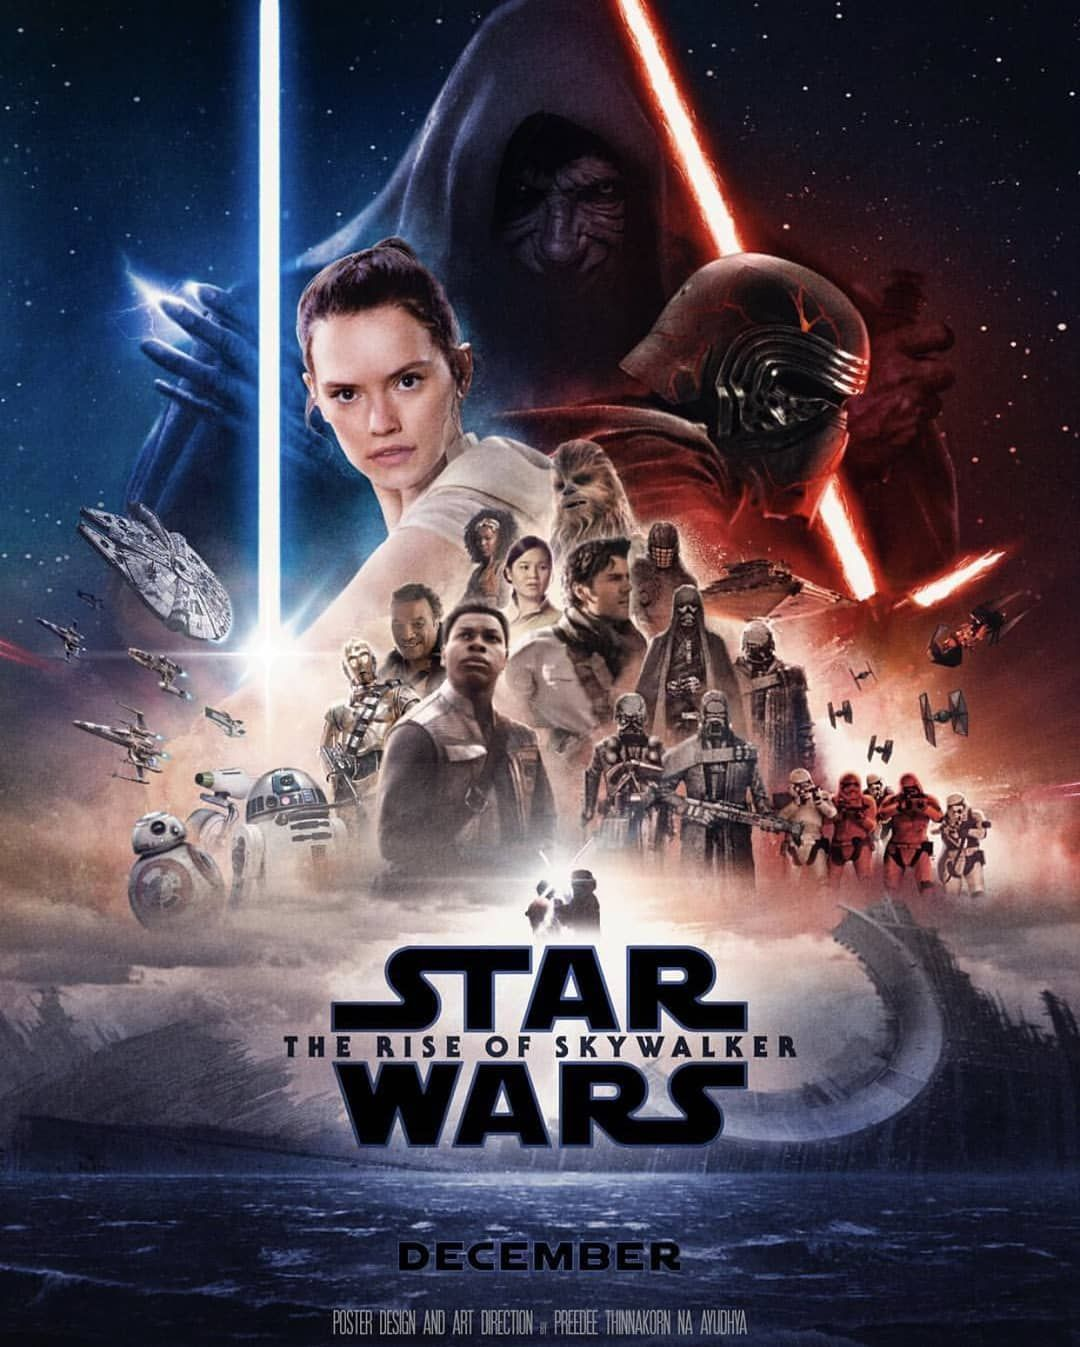 Download And Watch Star Wars Episode Ix The Rise Of Skywalker 1080p In 2020 Star Wars Episodes Star Wars Movies Posters Star Wars Images